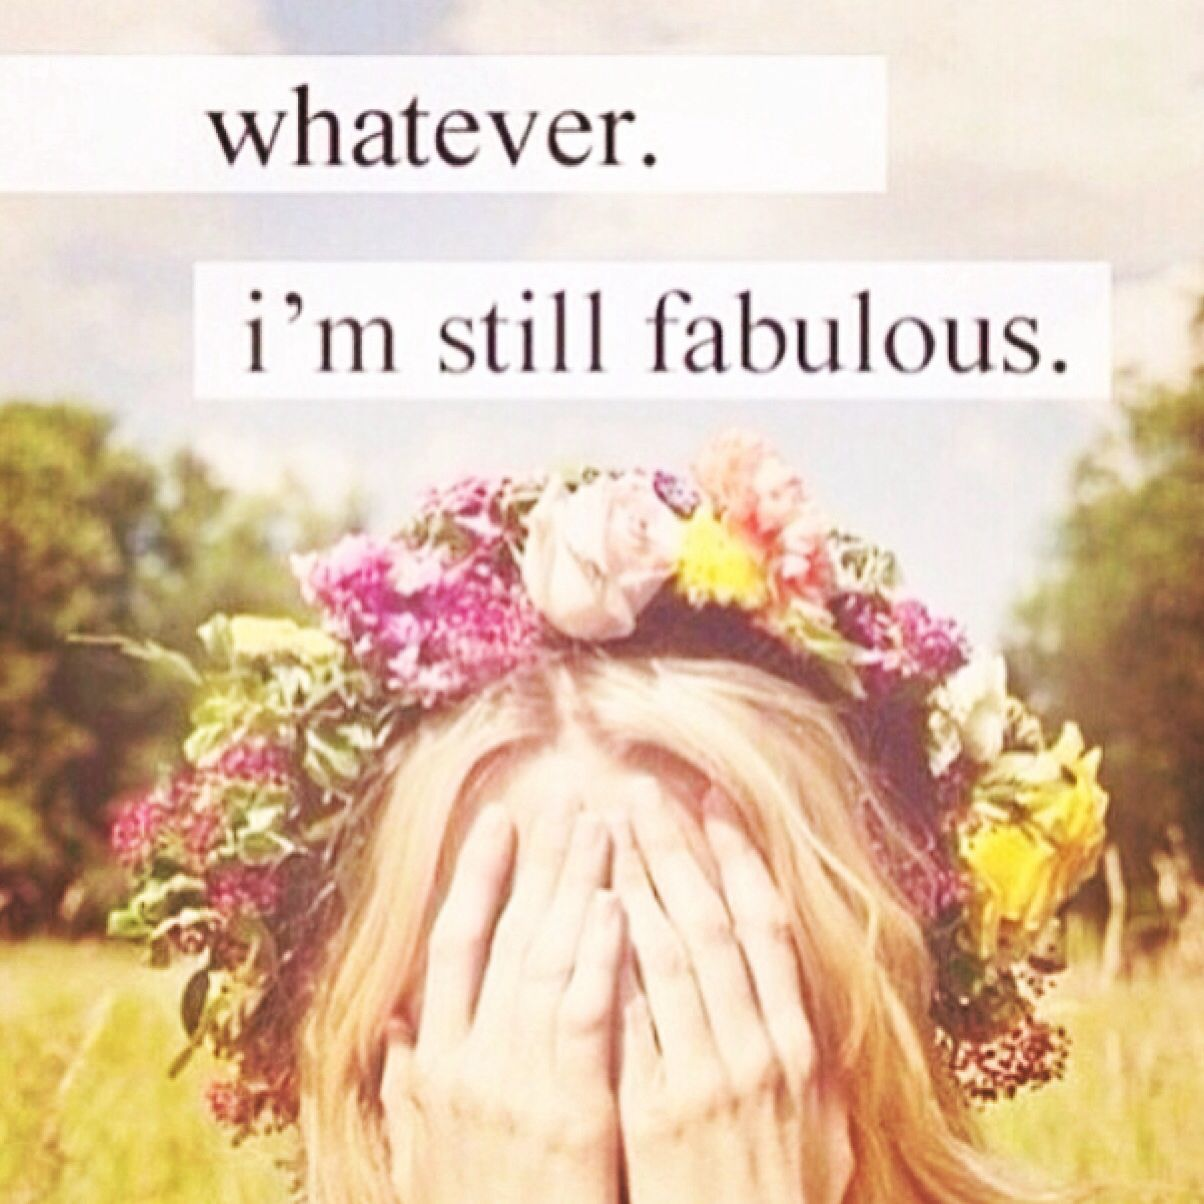 Whatever, I'm still fabulous Girl quotes, Crown quotes